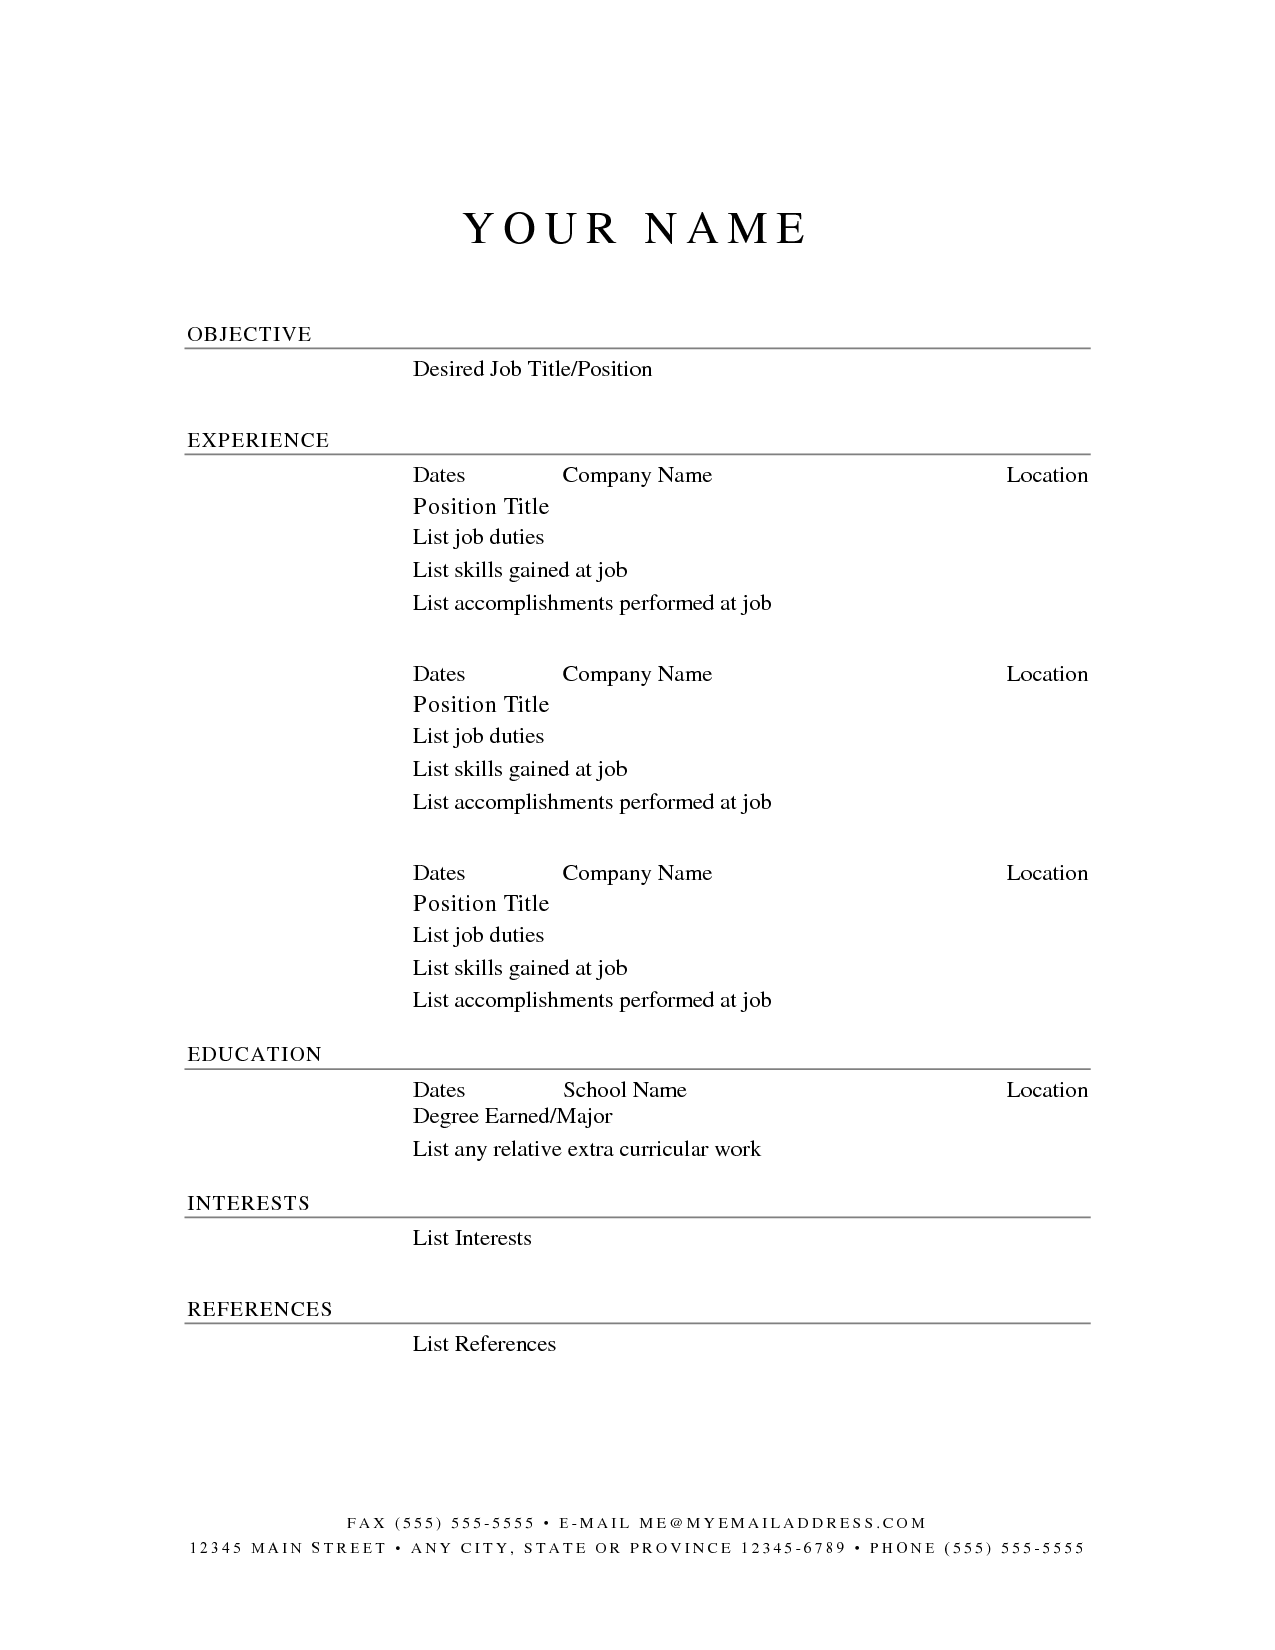 Printable resume templates free printable resume template where can i get a free resume template free printable resume template thecheapjerseys